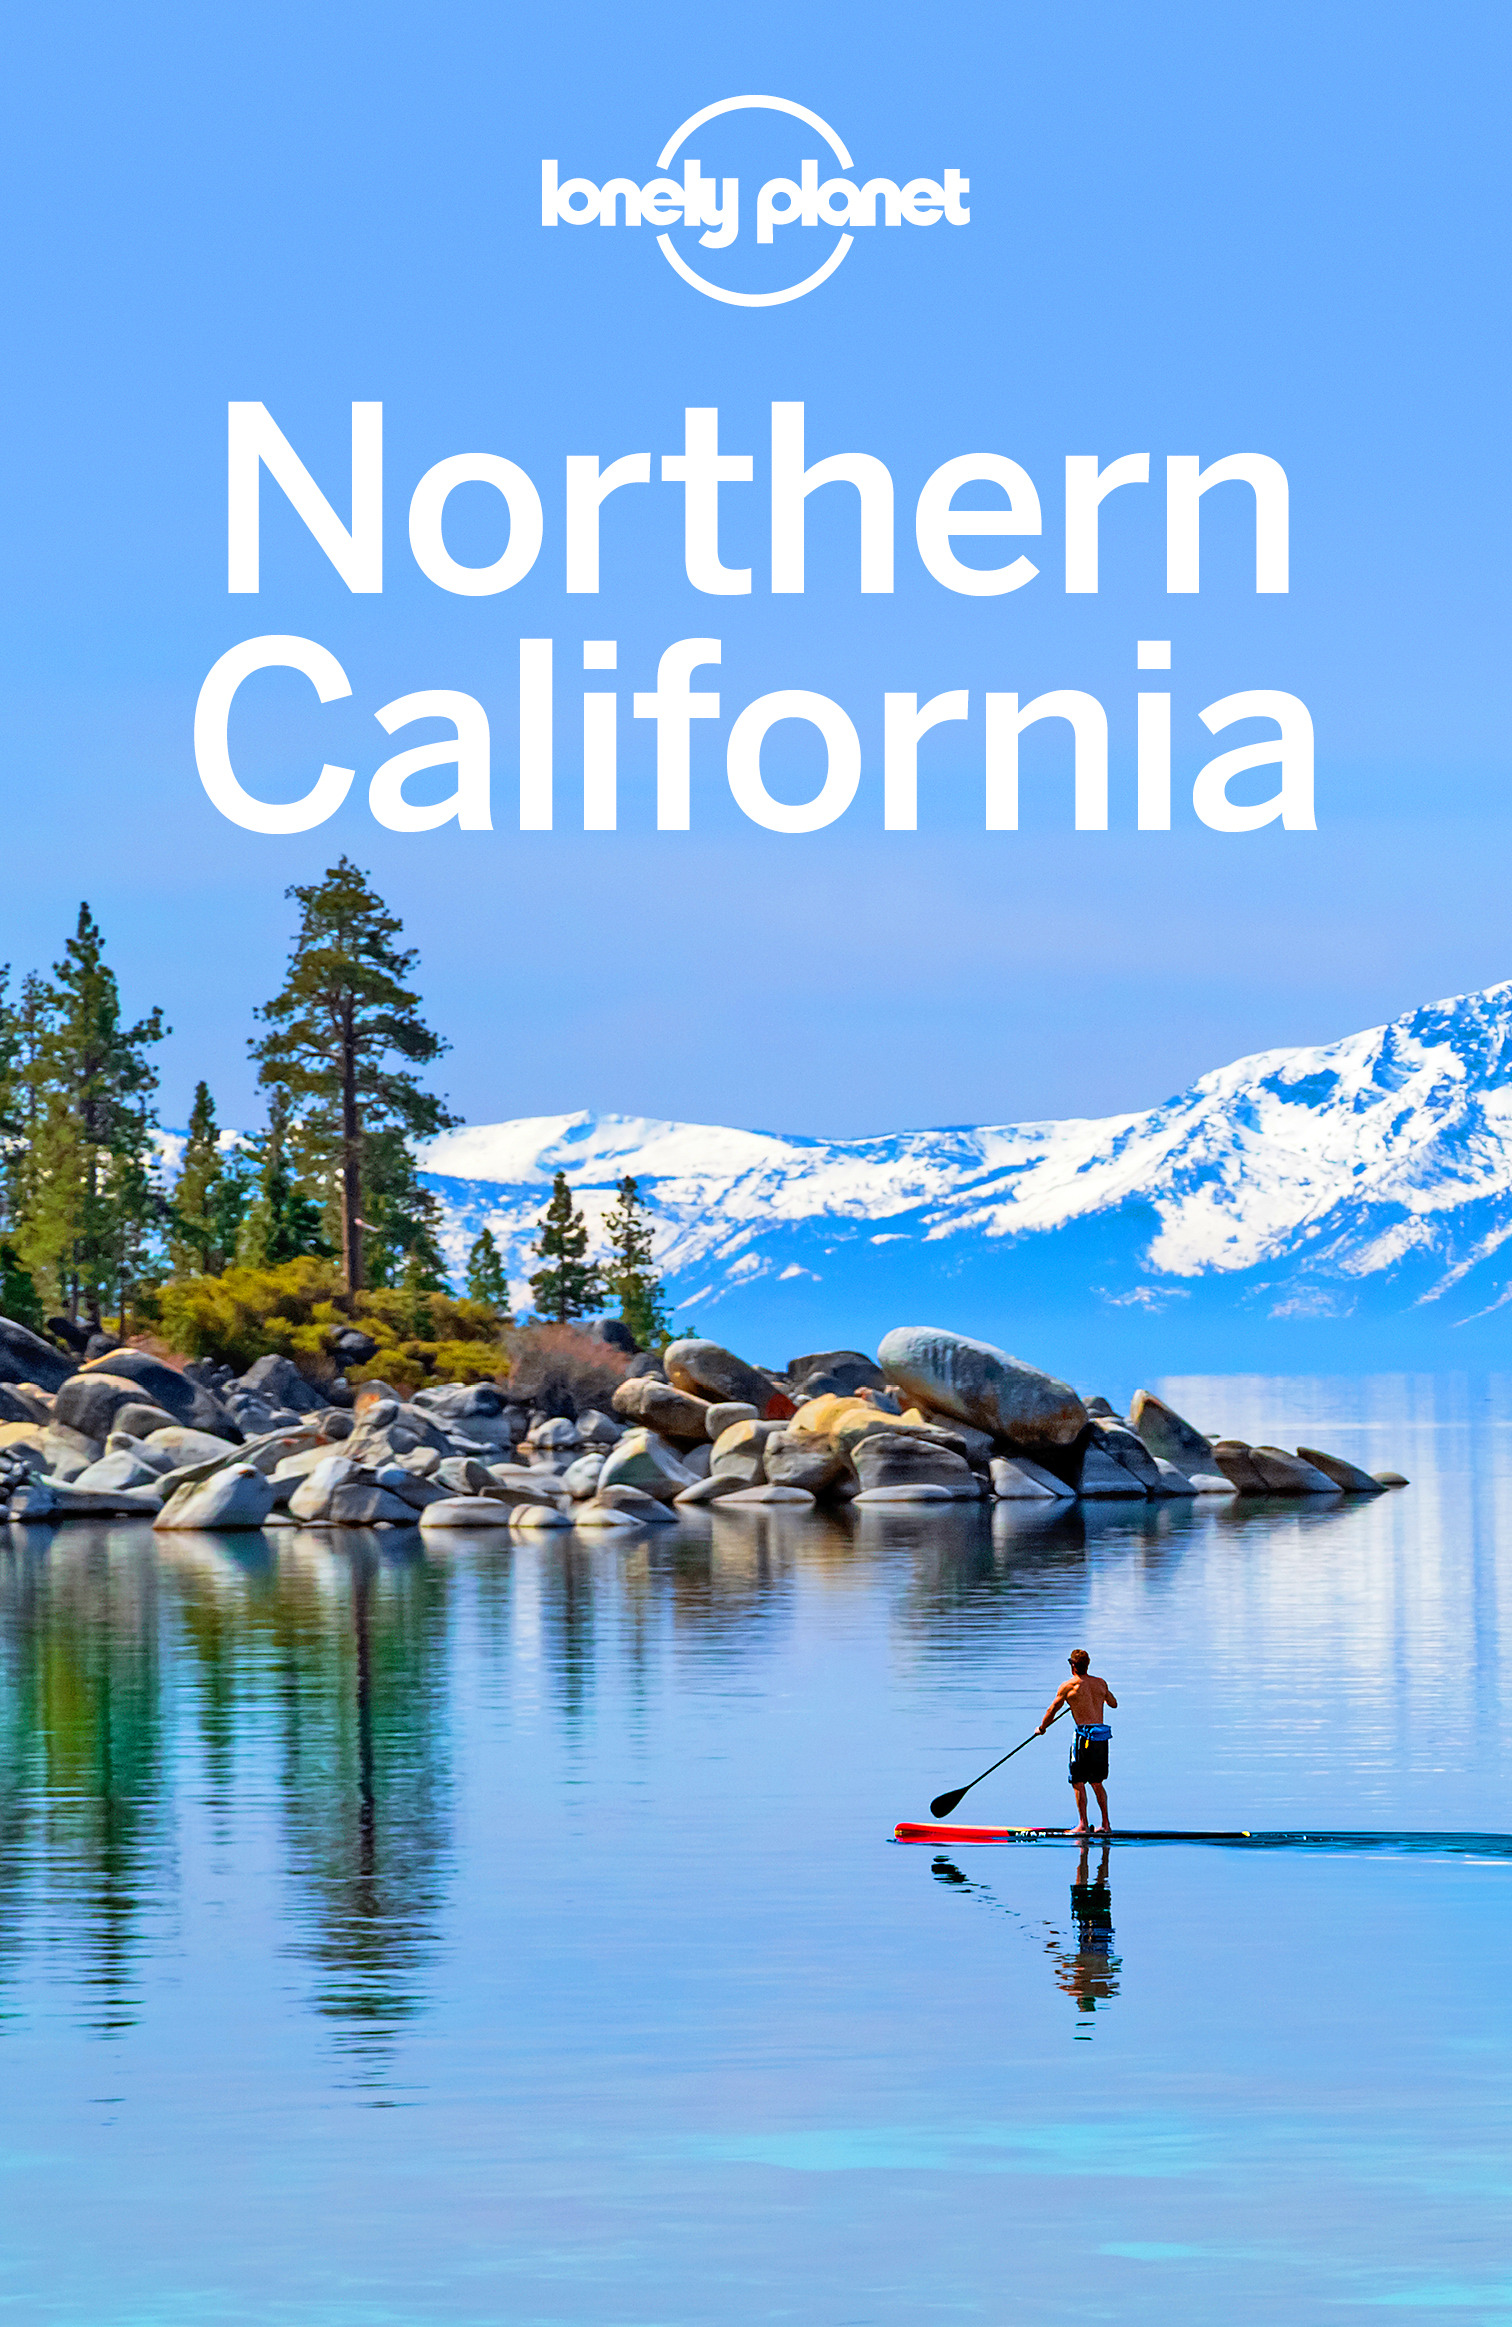 Atkinson, Brett - Lonely Planet Northern California, ebook